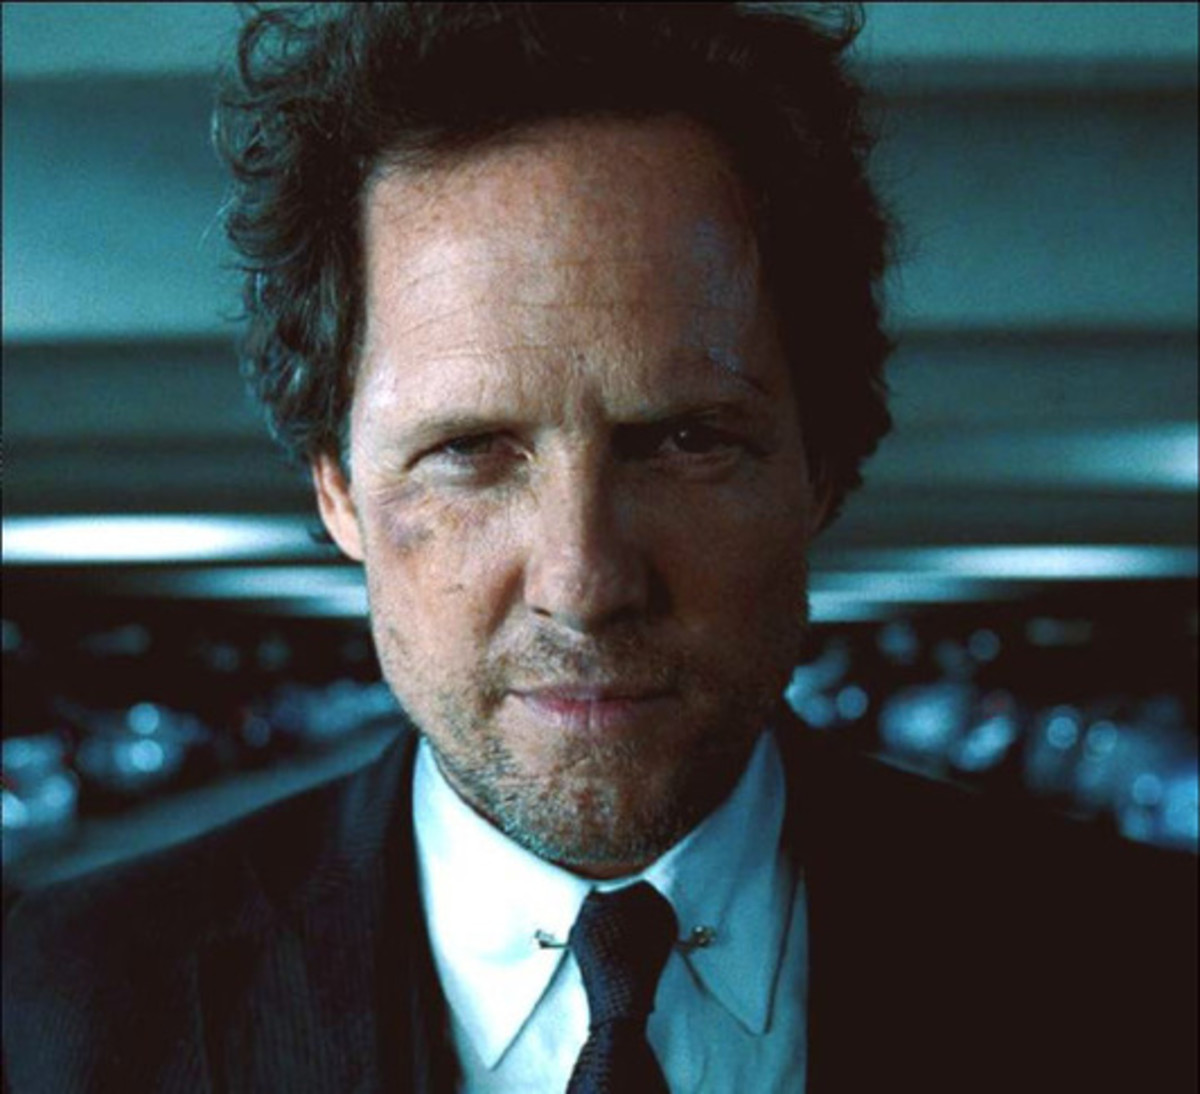 Allstate Mayhem Guy Actor Dean Winters